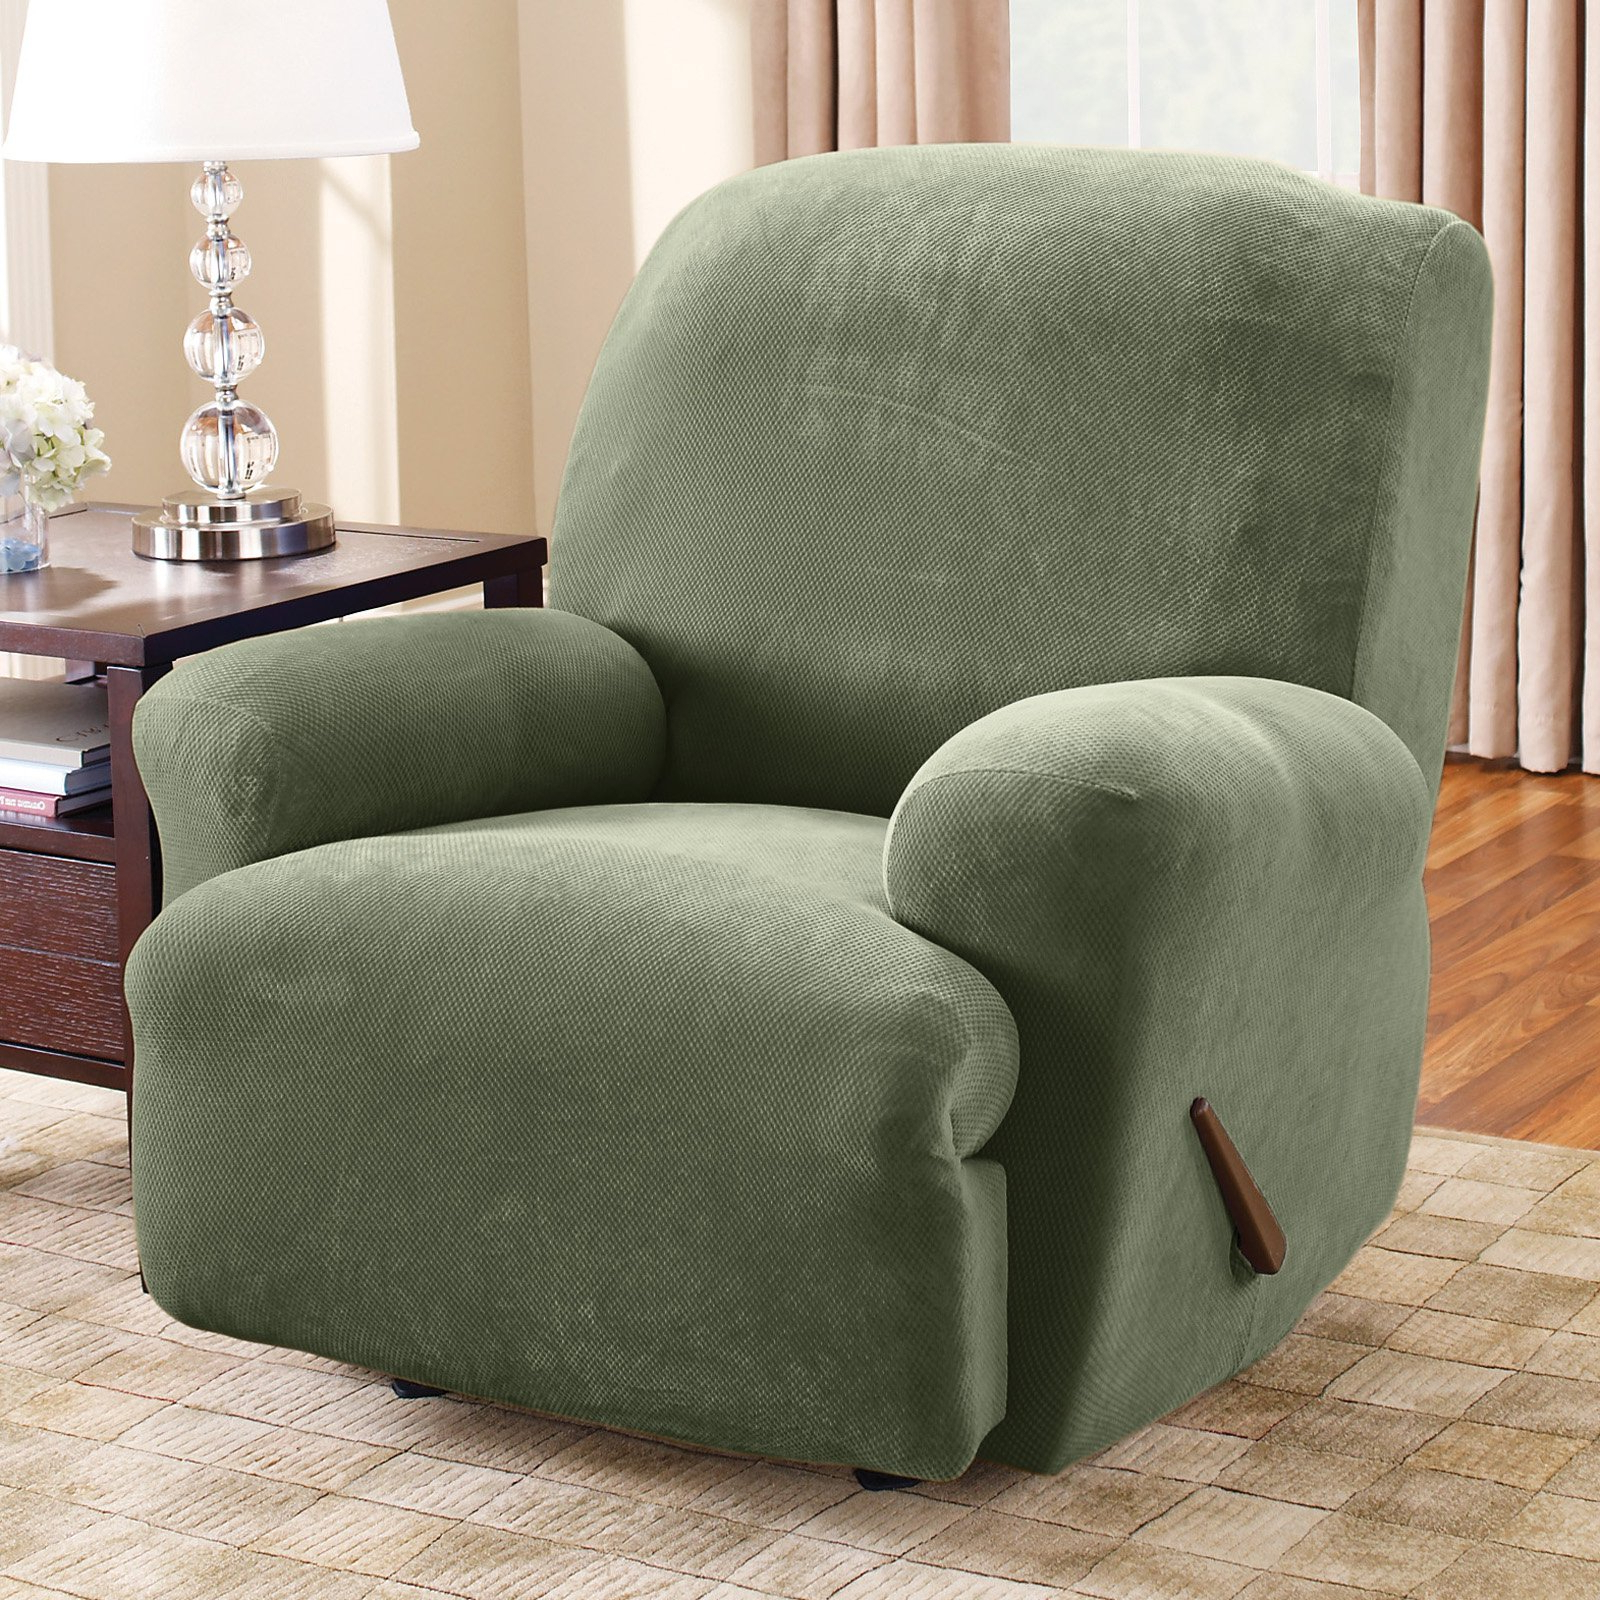 Sofas: Glamour Sofa With Recliner Covers Walmart Design Ideas Within Popular Sofa And Chair Slipcovers (View 16 of 20)